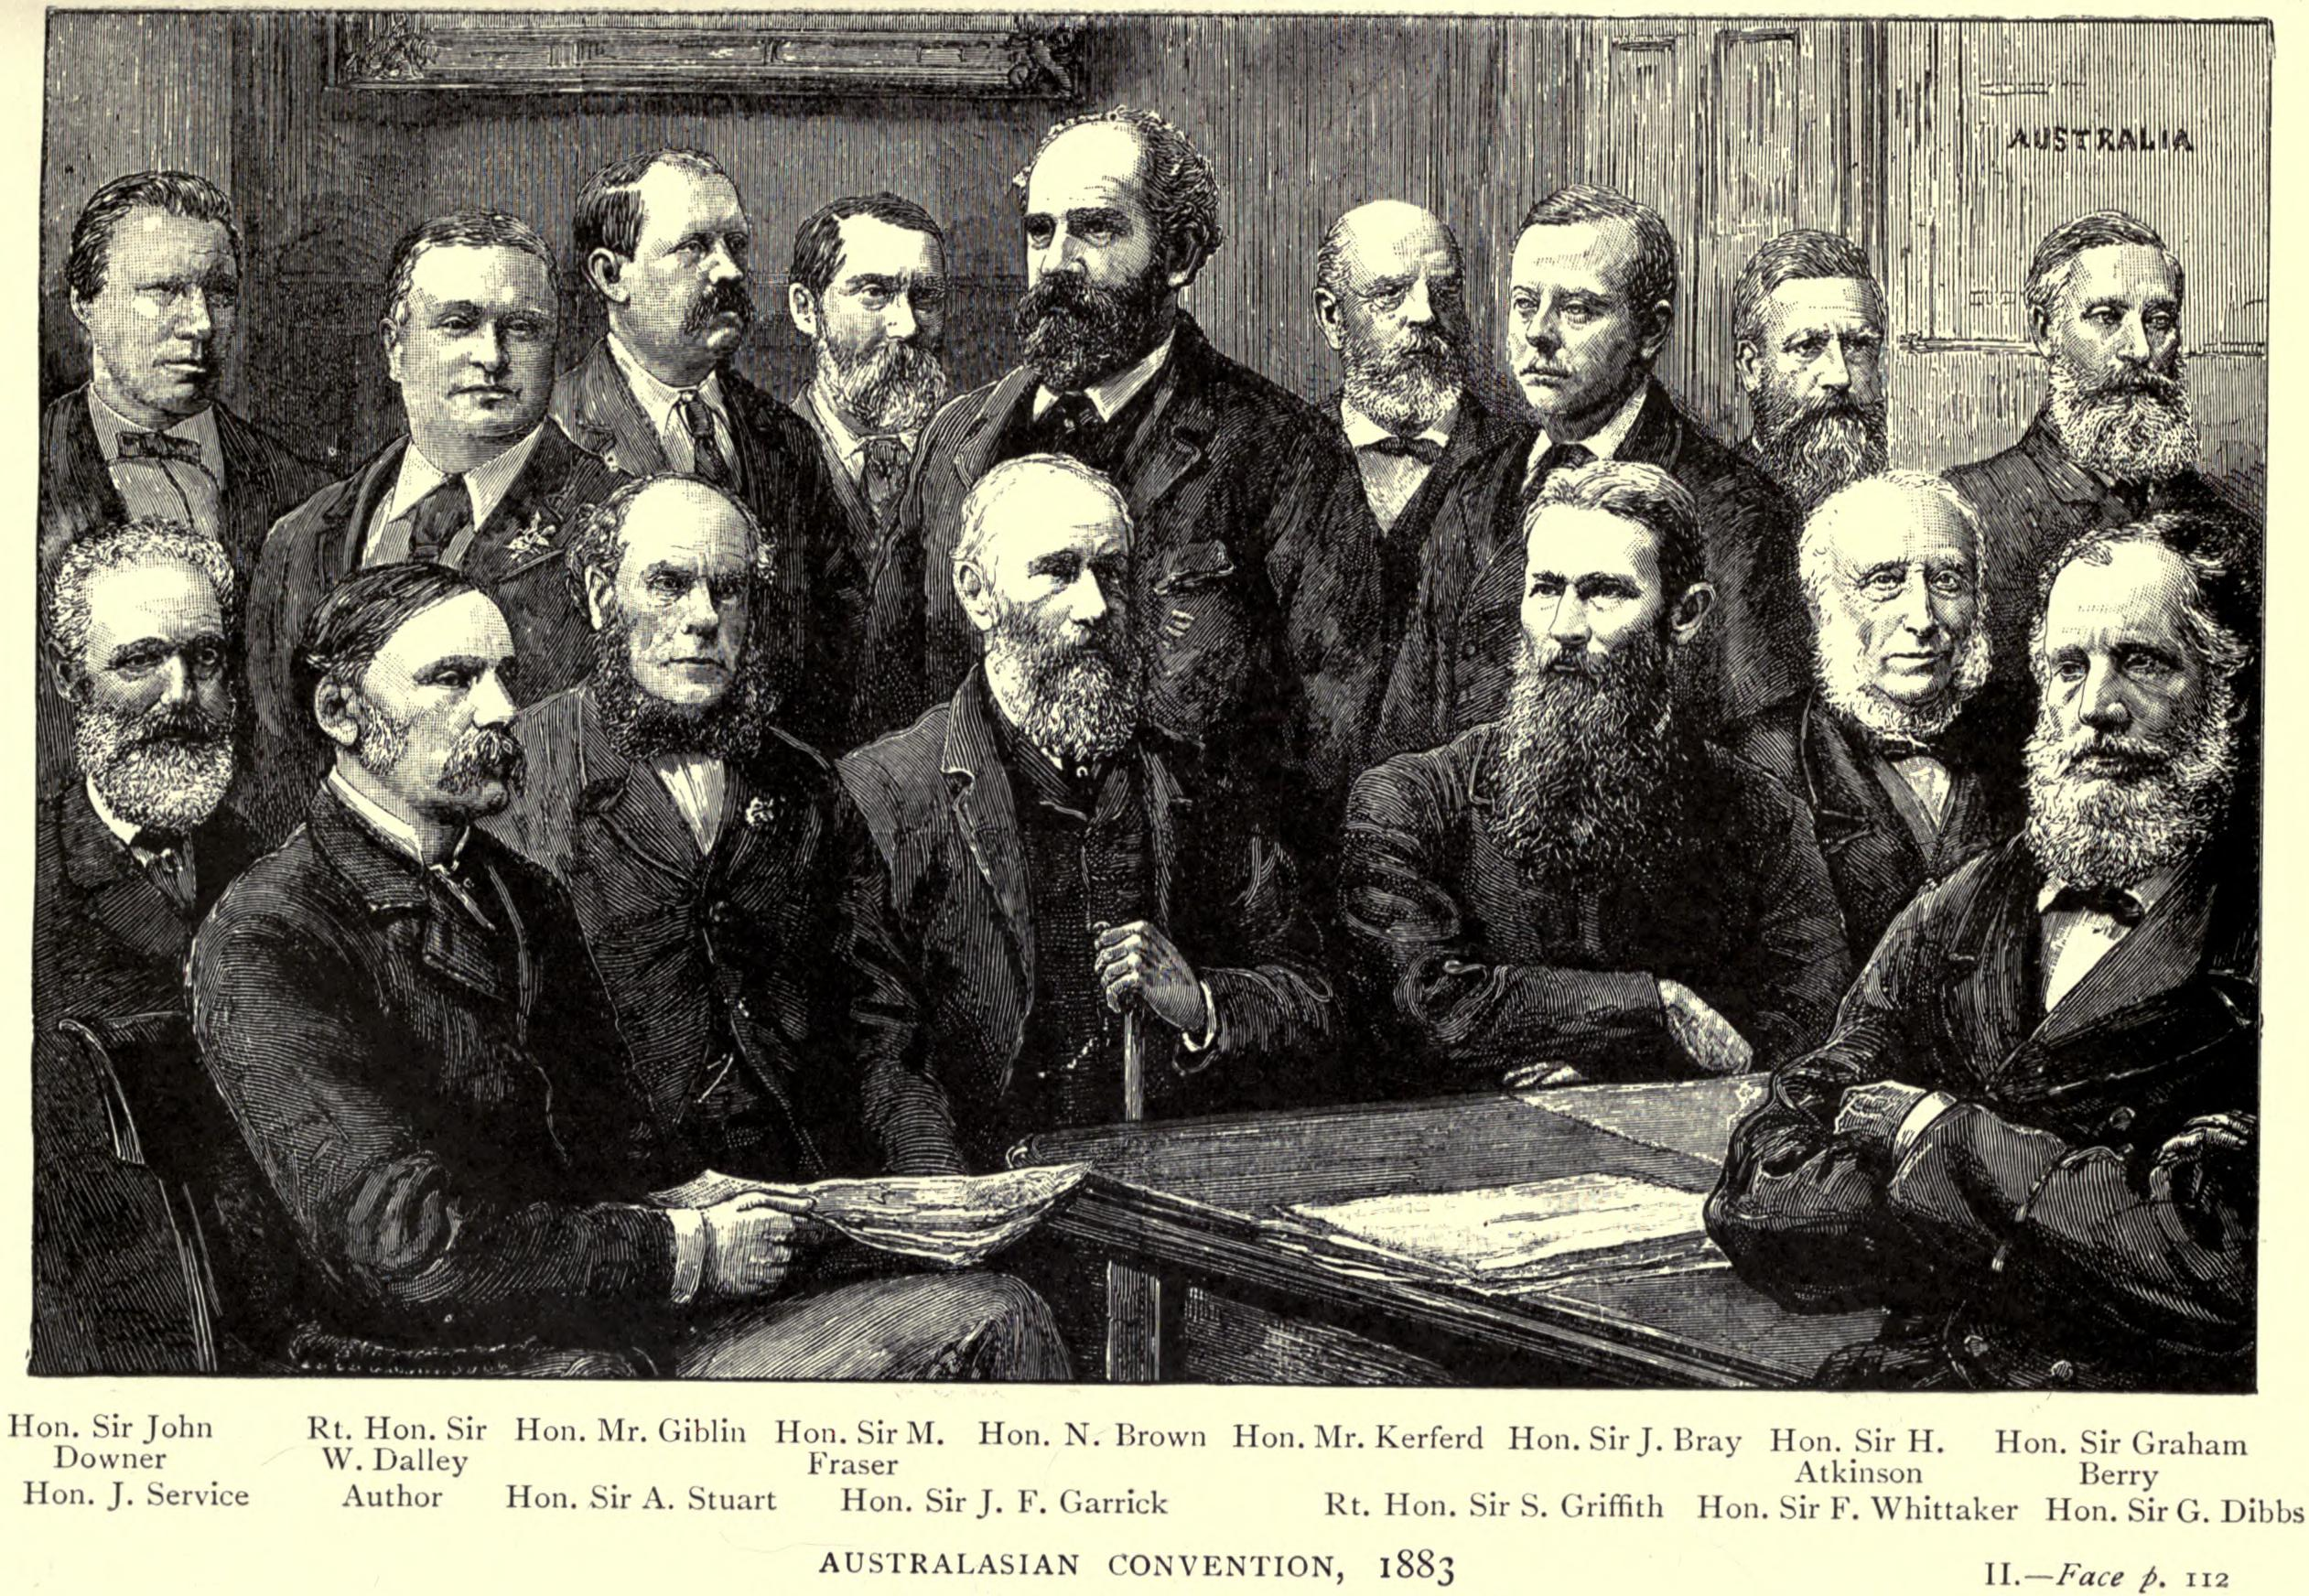 File:Australasian Convention, 1883.jpg